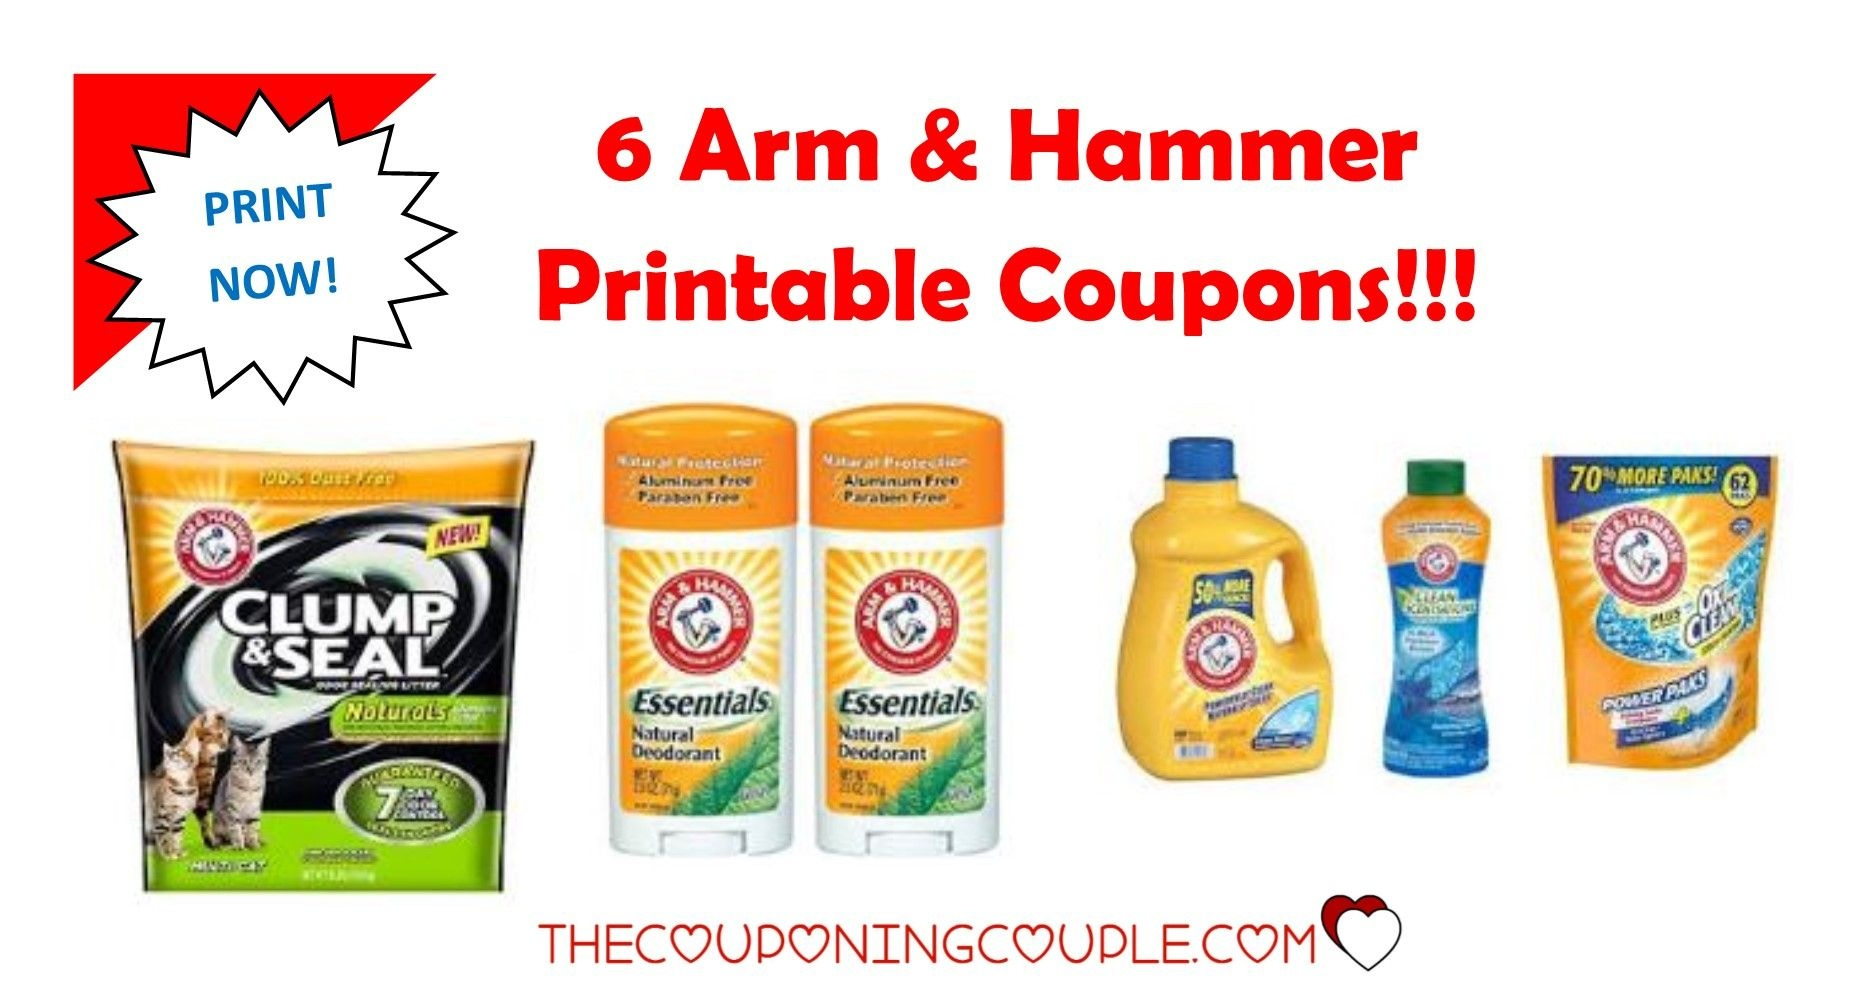 3 Arm & Hammer Printable Coupons ~ Print Now!! - Free Printable Arm And Hammer Coupons